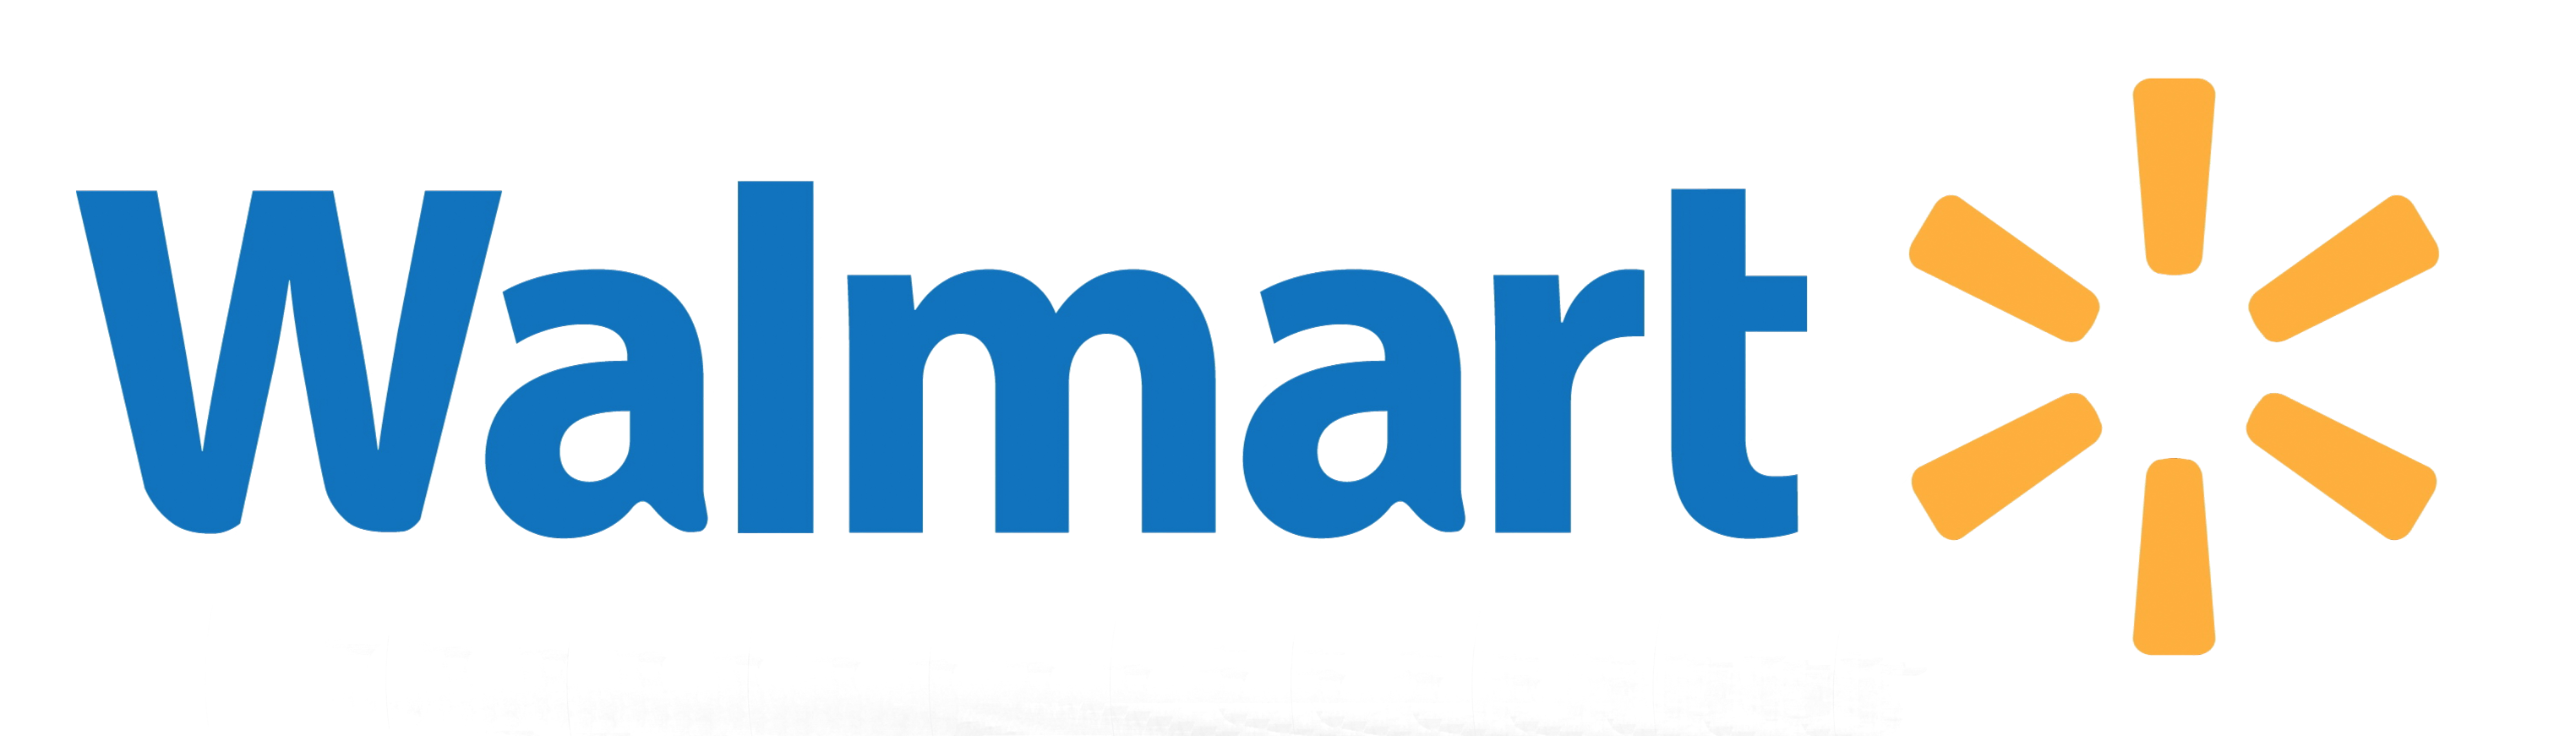 Canada Blue Product Walmart Retail Download HD PNG PNG Image